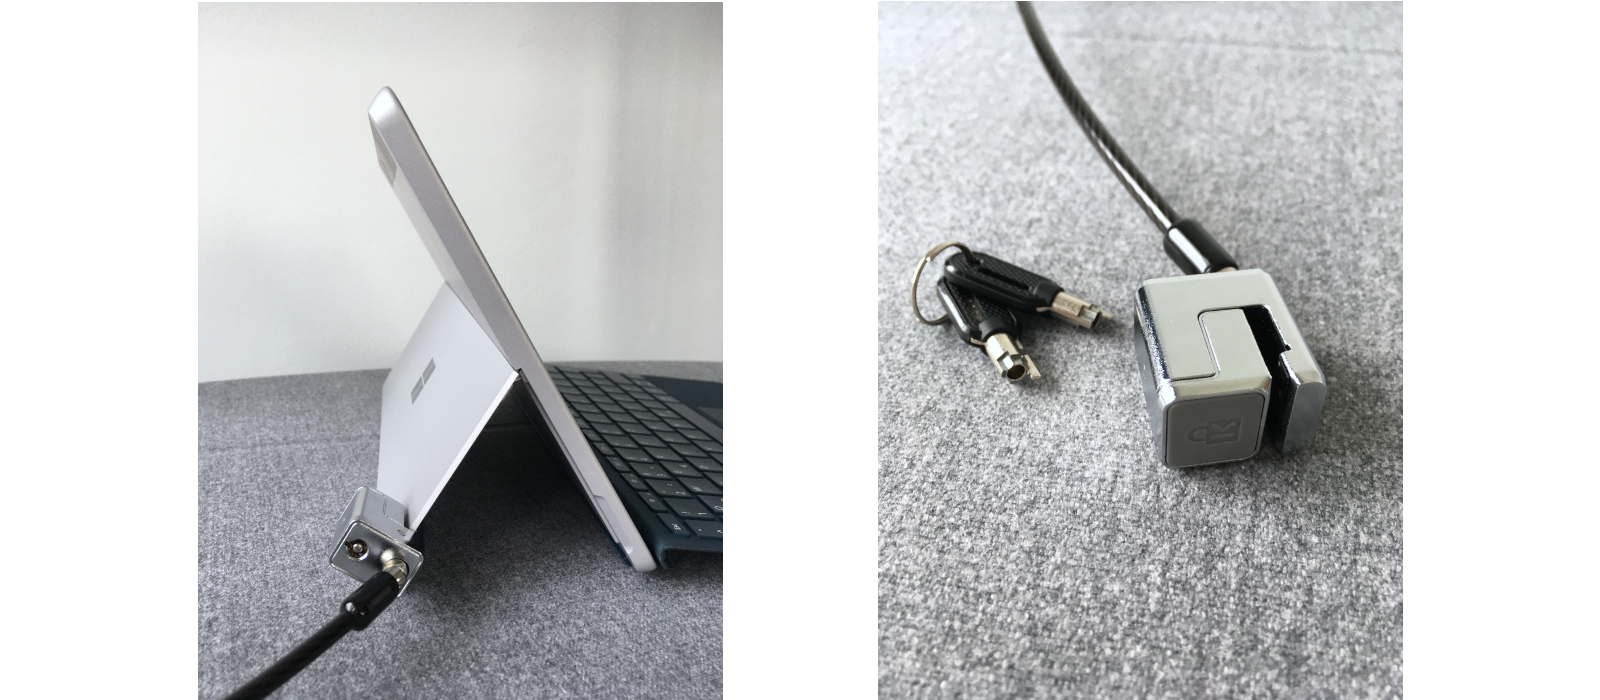 Kensington® Cable Lock for the Surface Pro 7+/7/6/5/4 & Surface Go and Surface Go 2 attached to the Surface Go